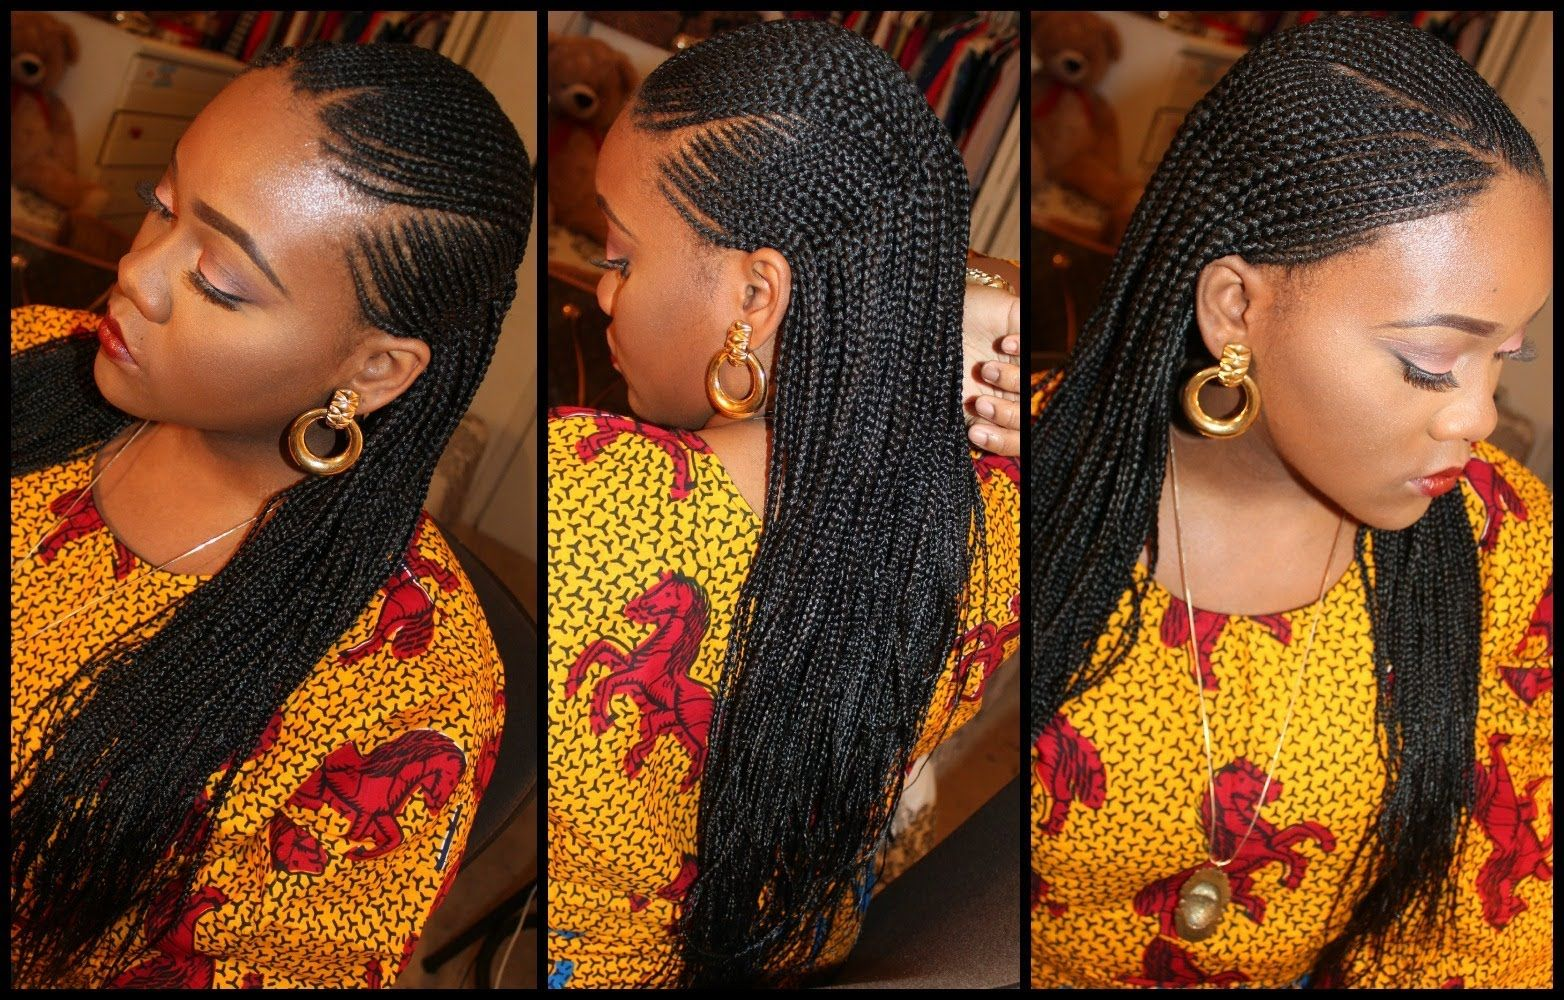 51 latest ghana braids hairstyles with pictures | nigerian ghana